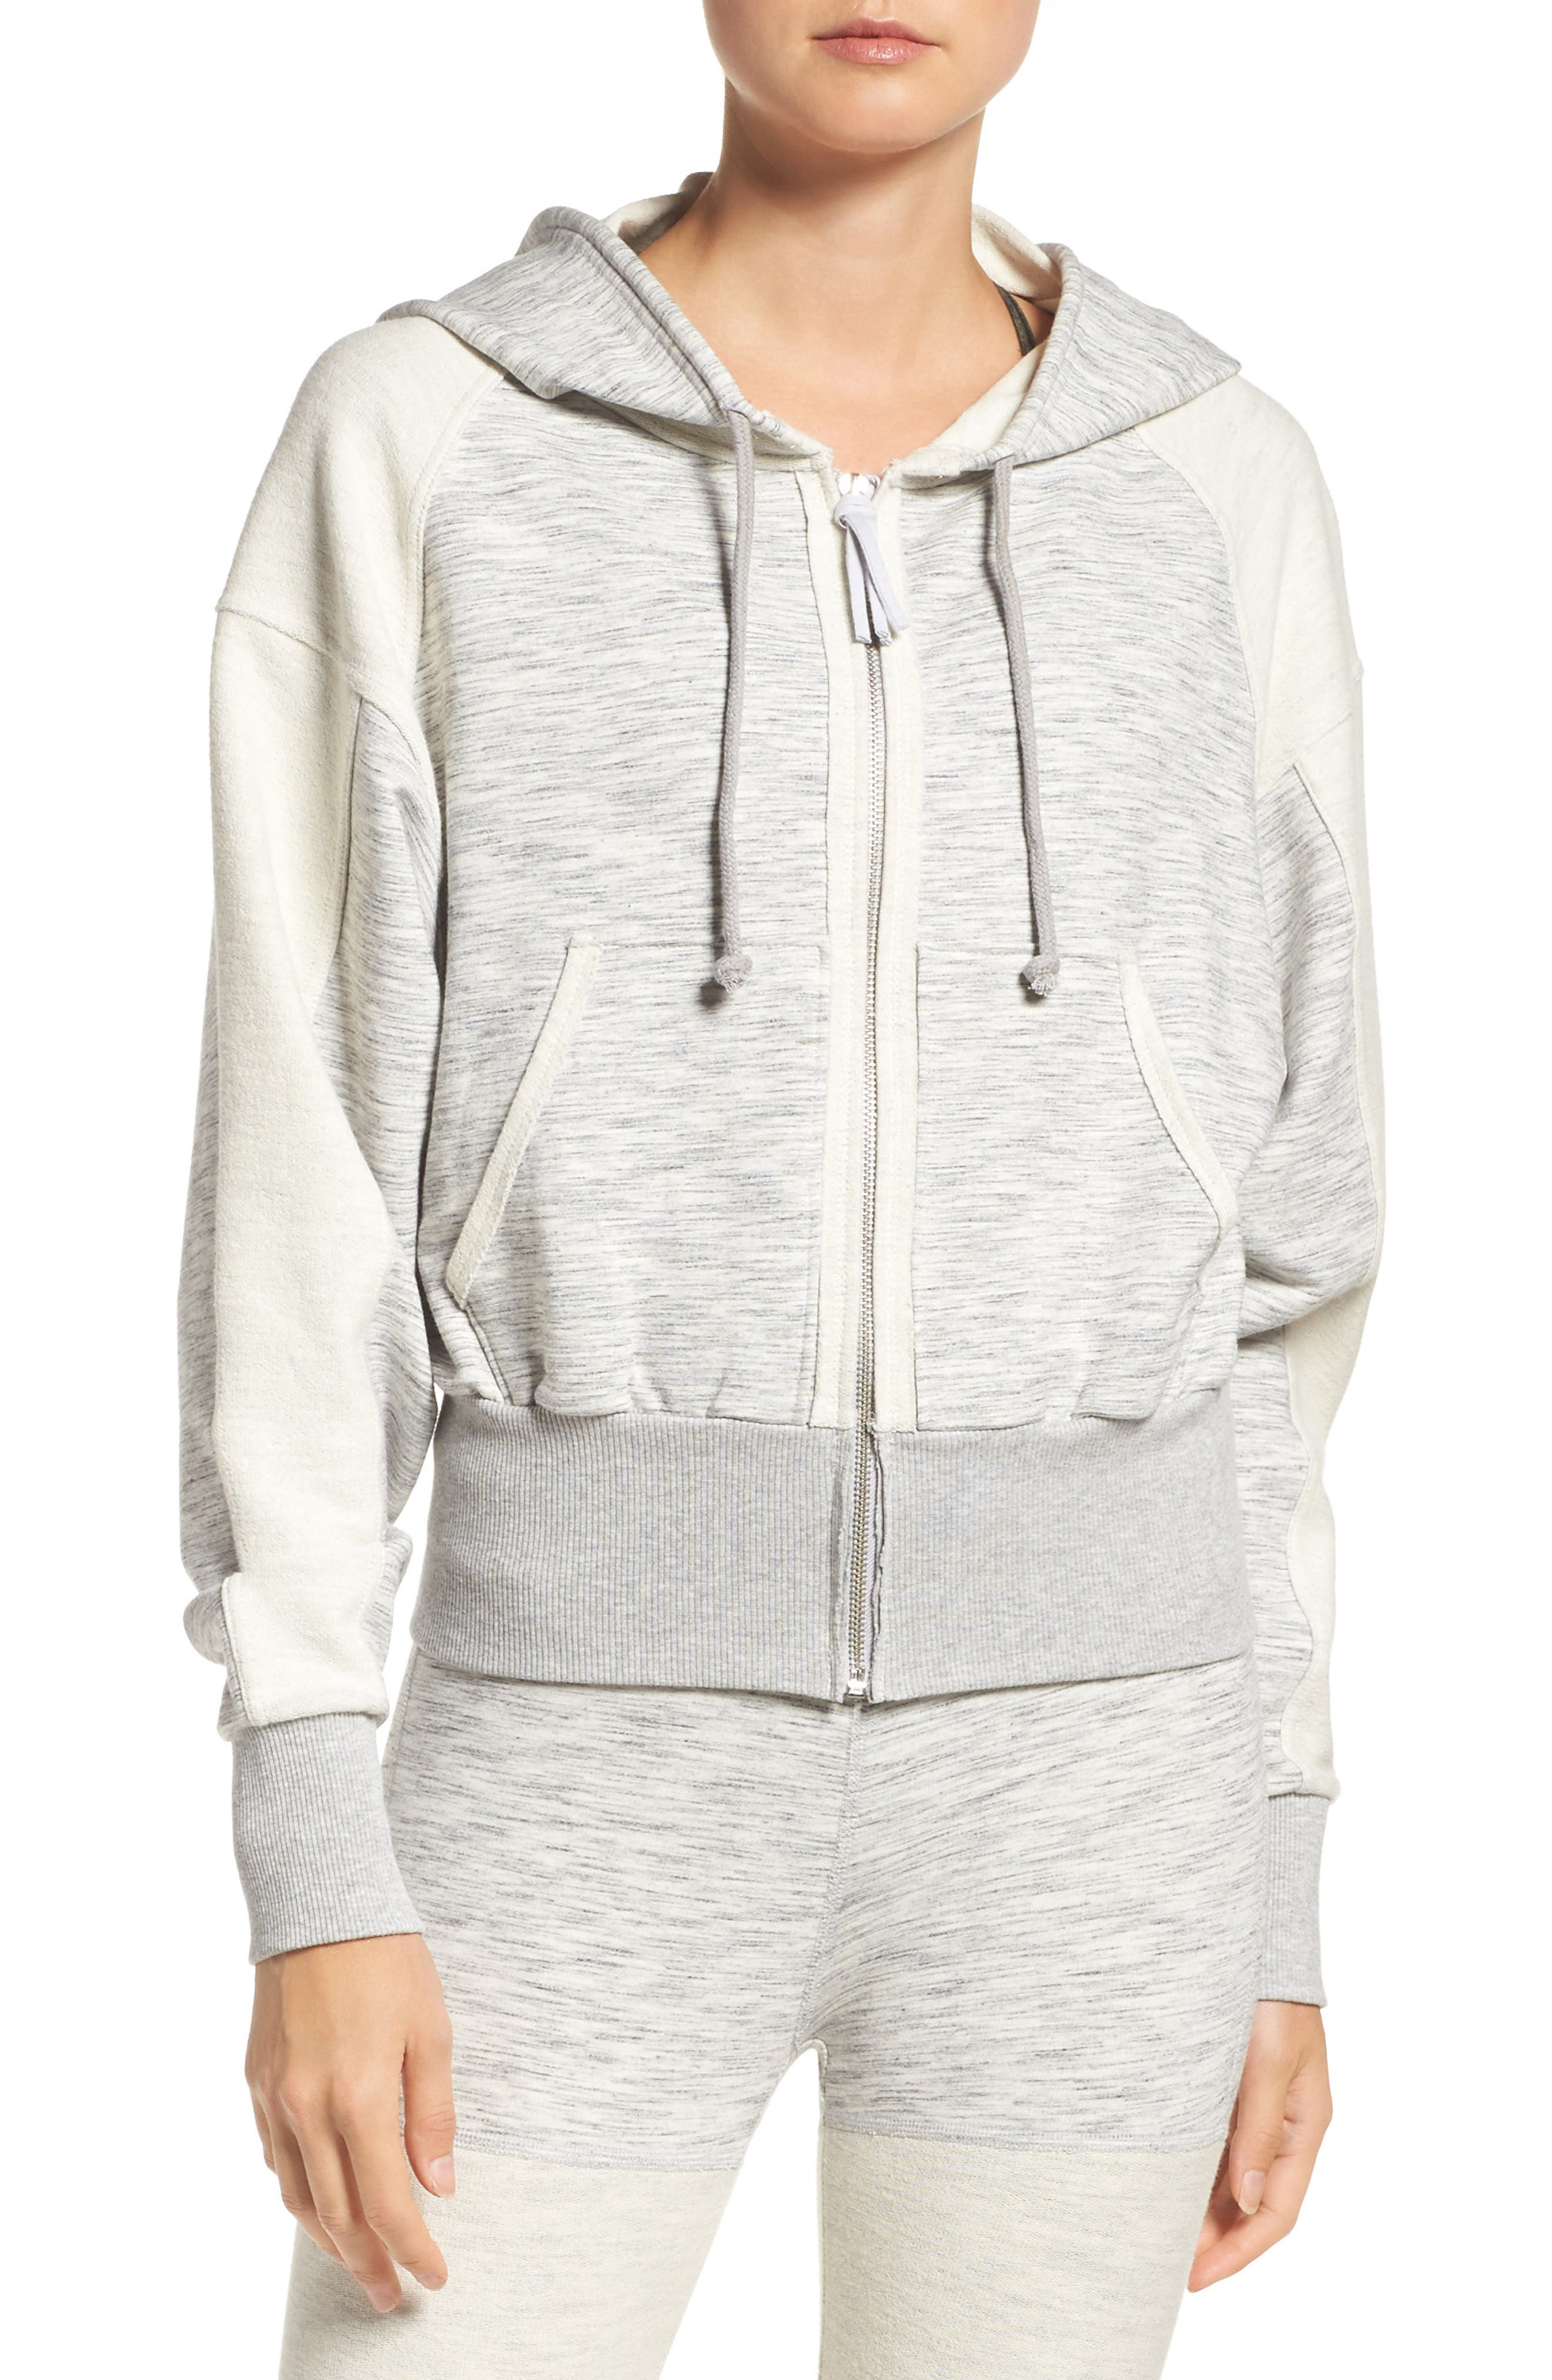 Shadowboxer Hoodie,                         Main,                         color, GREY